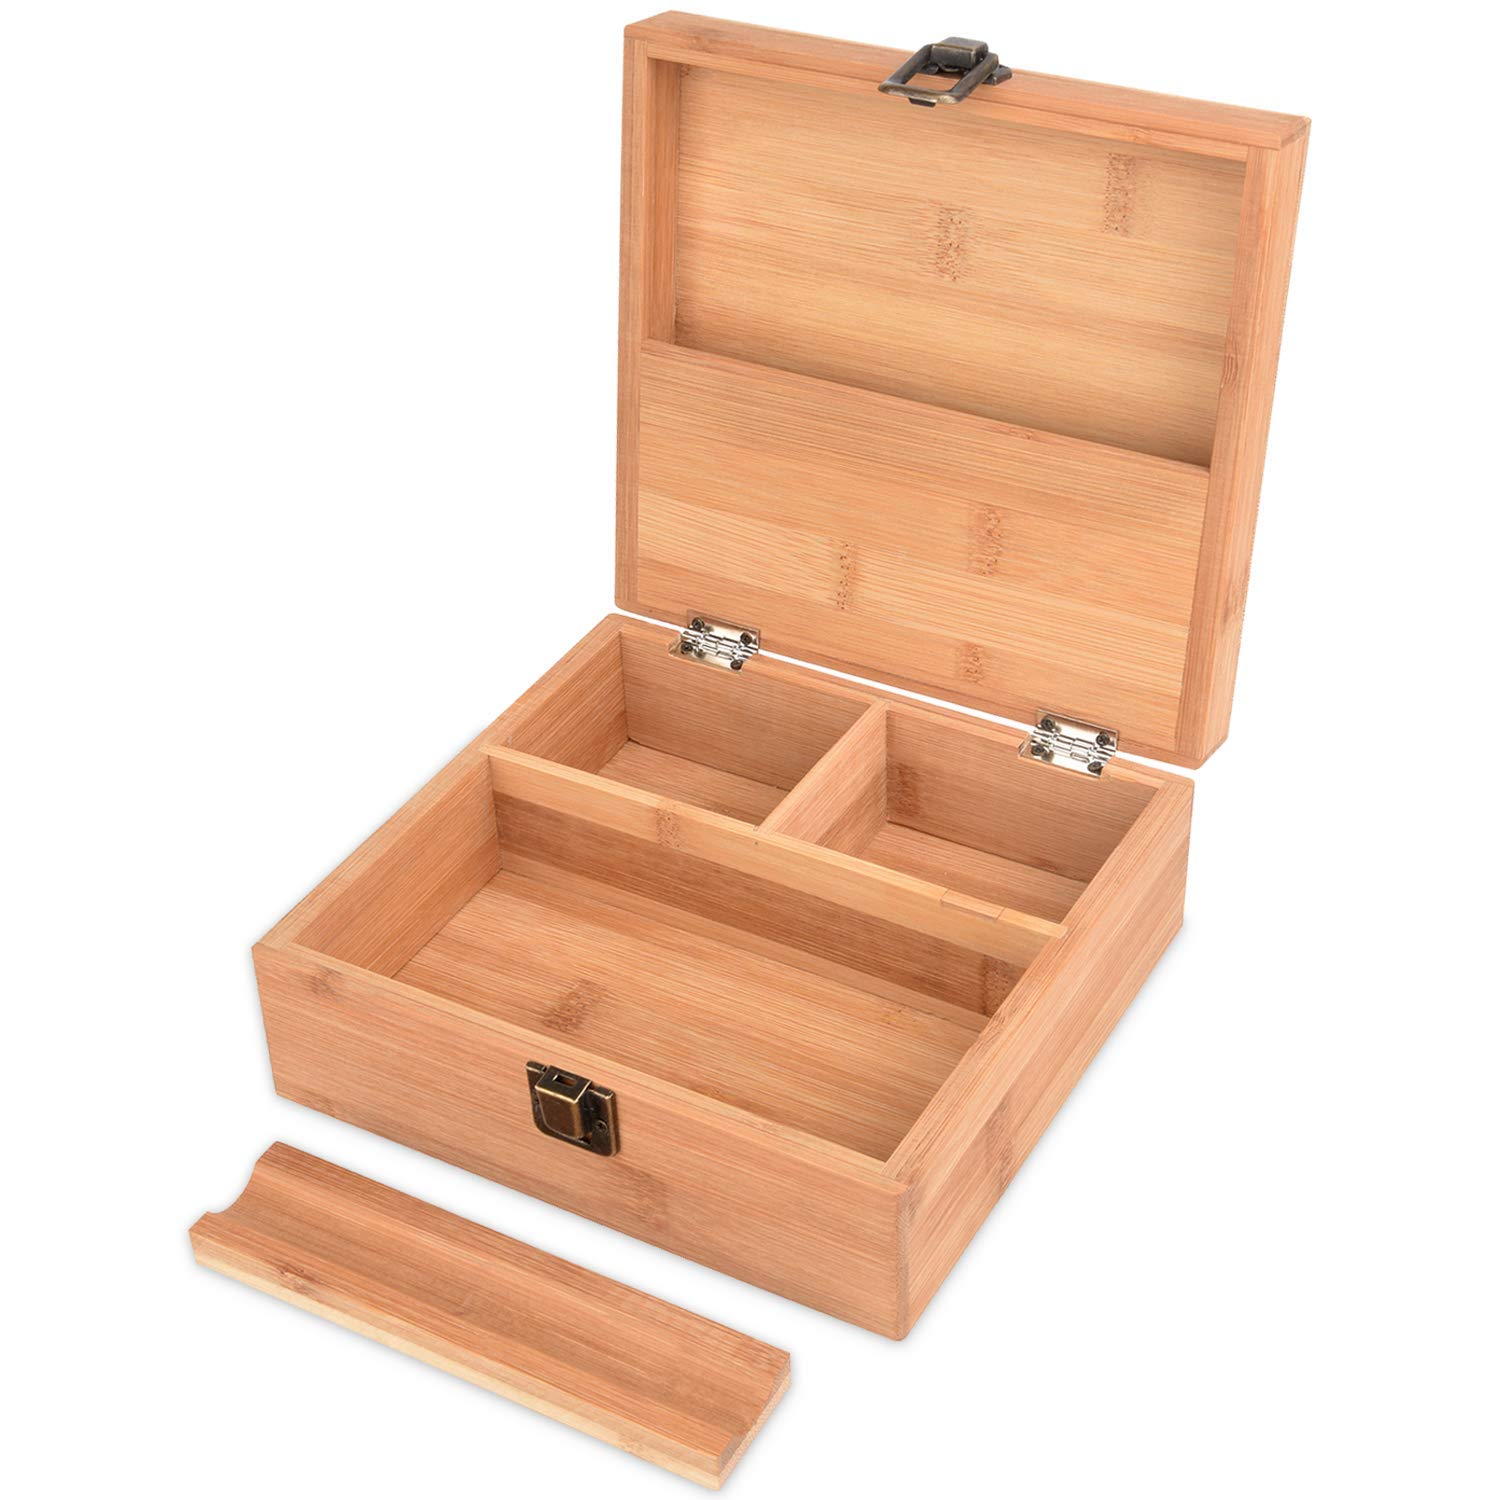 Stash Box for Weed with Rolling Tray - Large Storage Bamboo Box to Organize All Your Smoking Accessories - Premium Handmade Wooden Box with Hinged Lid - 7.5 x 7 x 3 Inches by The Eco Box